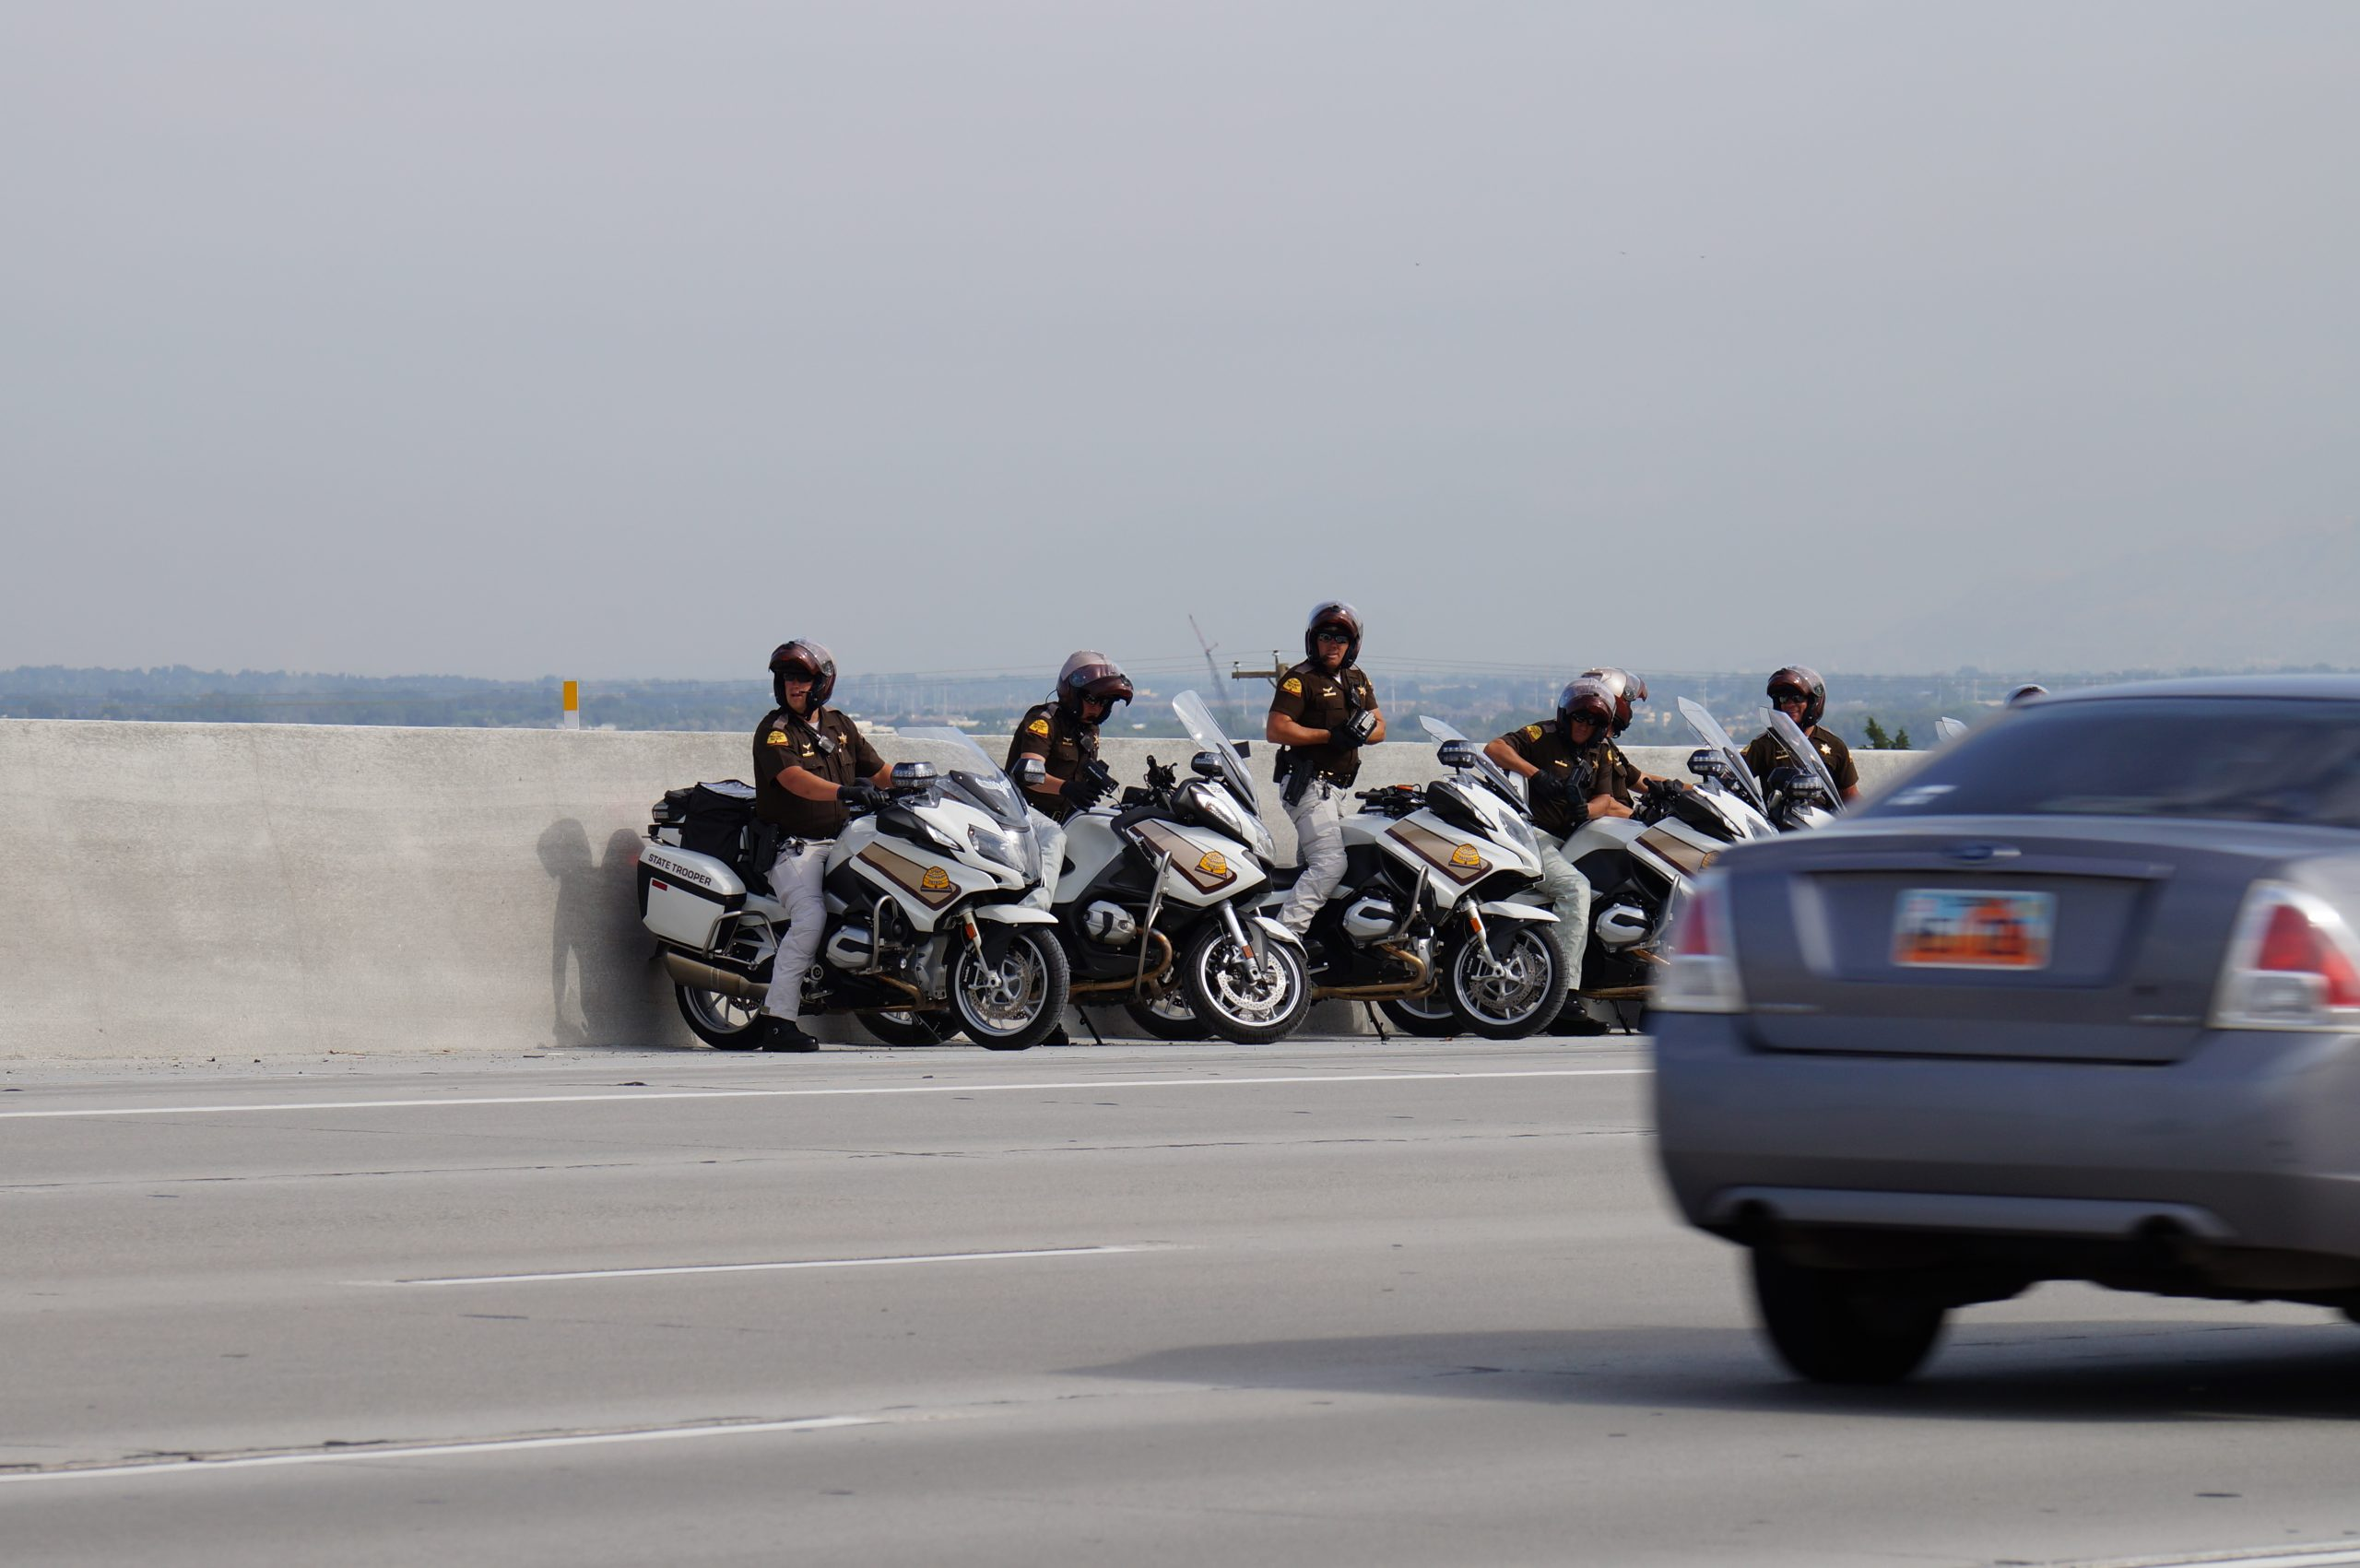 Image shows multiple motorcycles positioned in the median conducting speed enforcement.